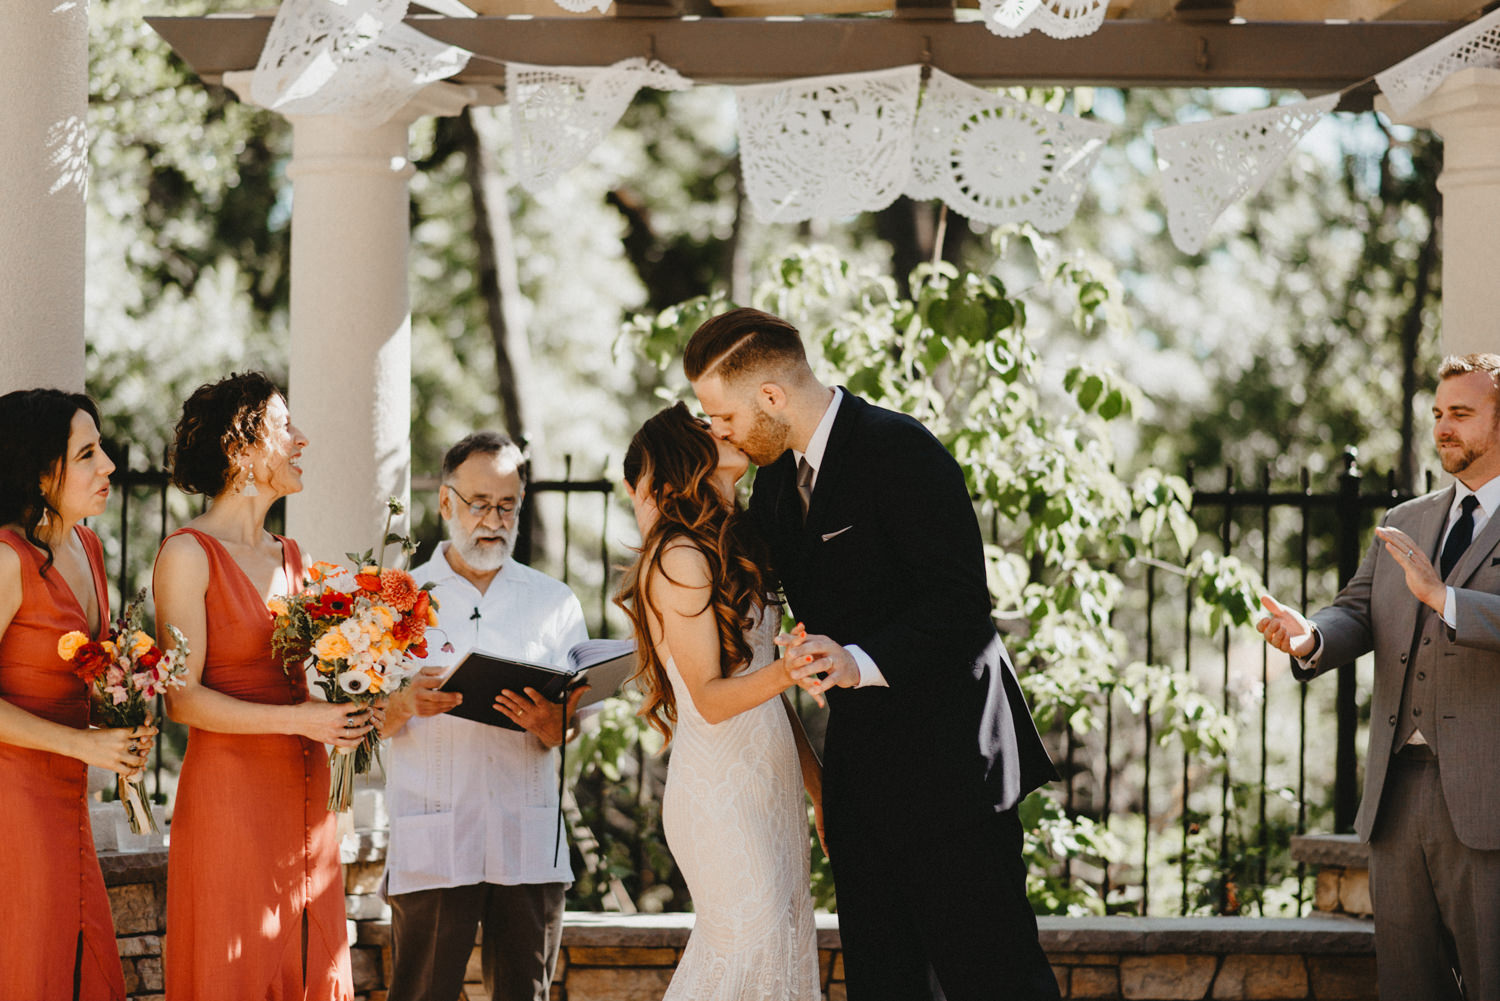 FIrst Kiss at chico ca wedding